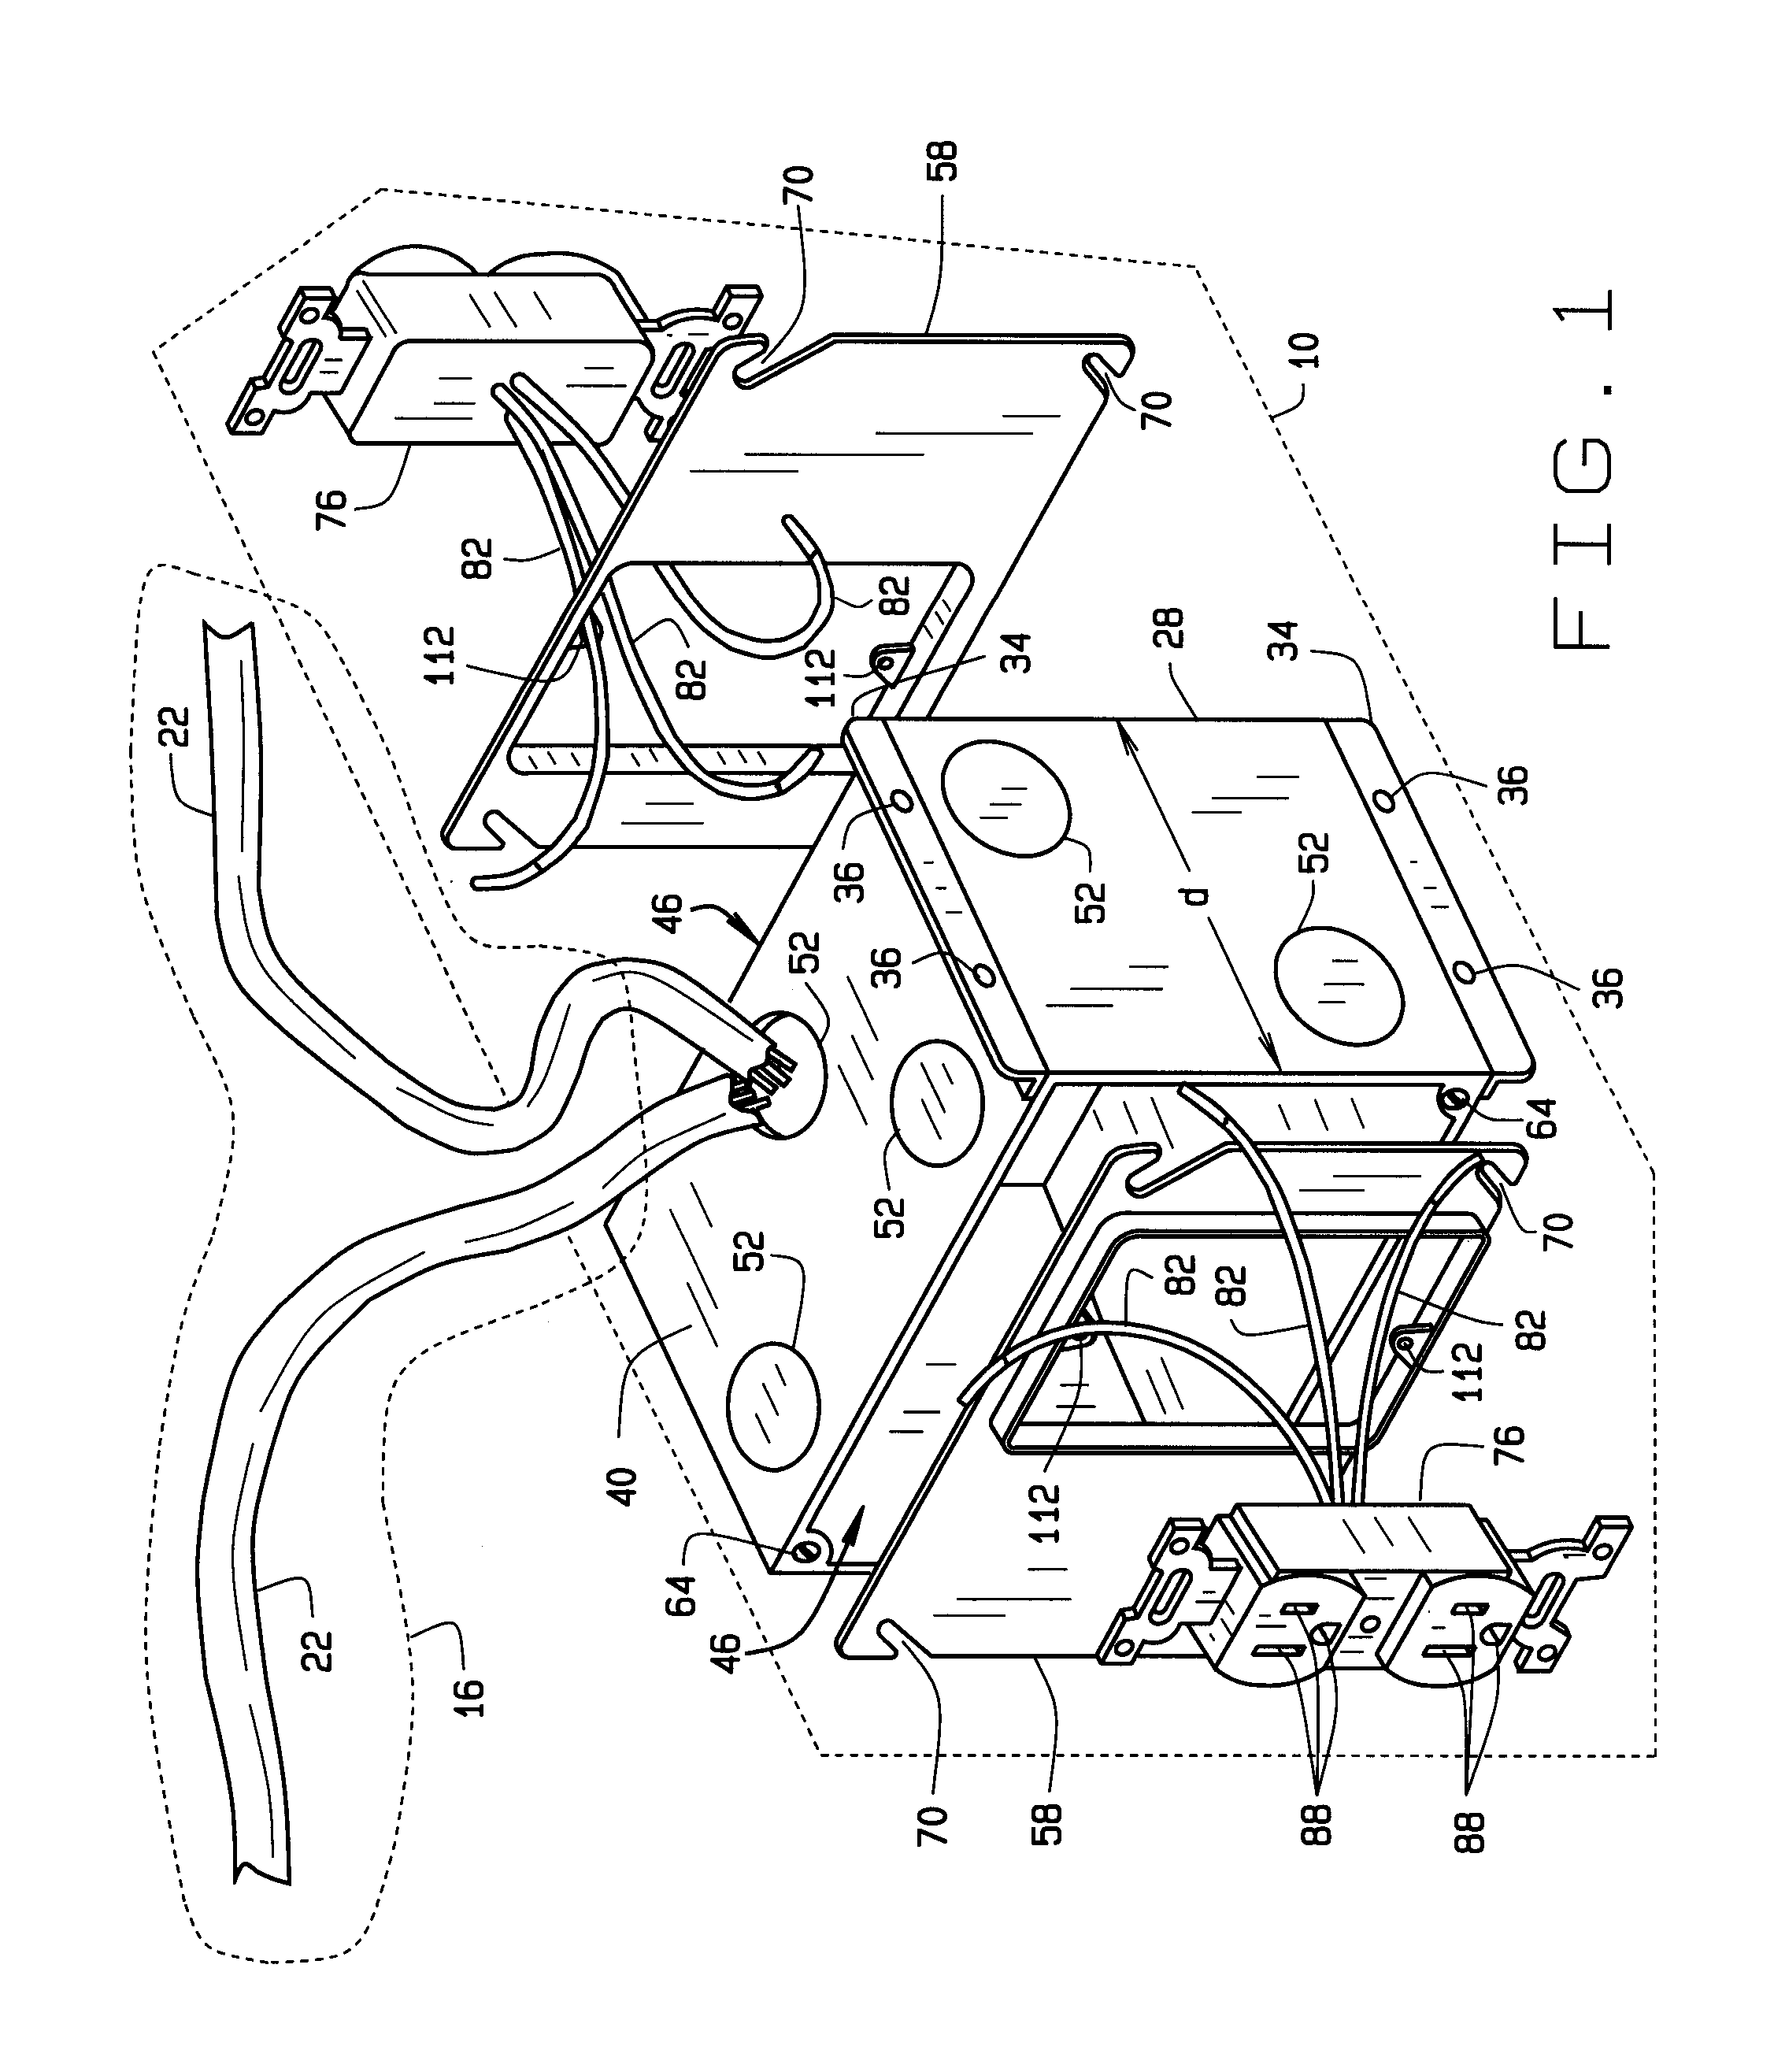 Patent Us20100240249 Electrical Wiring System Google Patents Typical Method For Receptacle Termination Using Pigtails Drawing